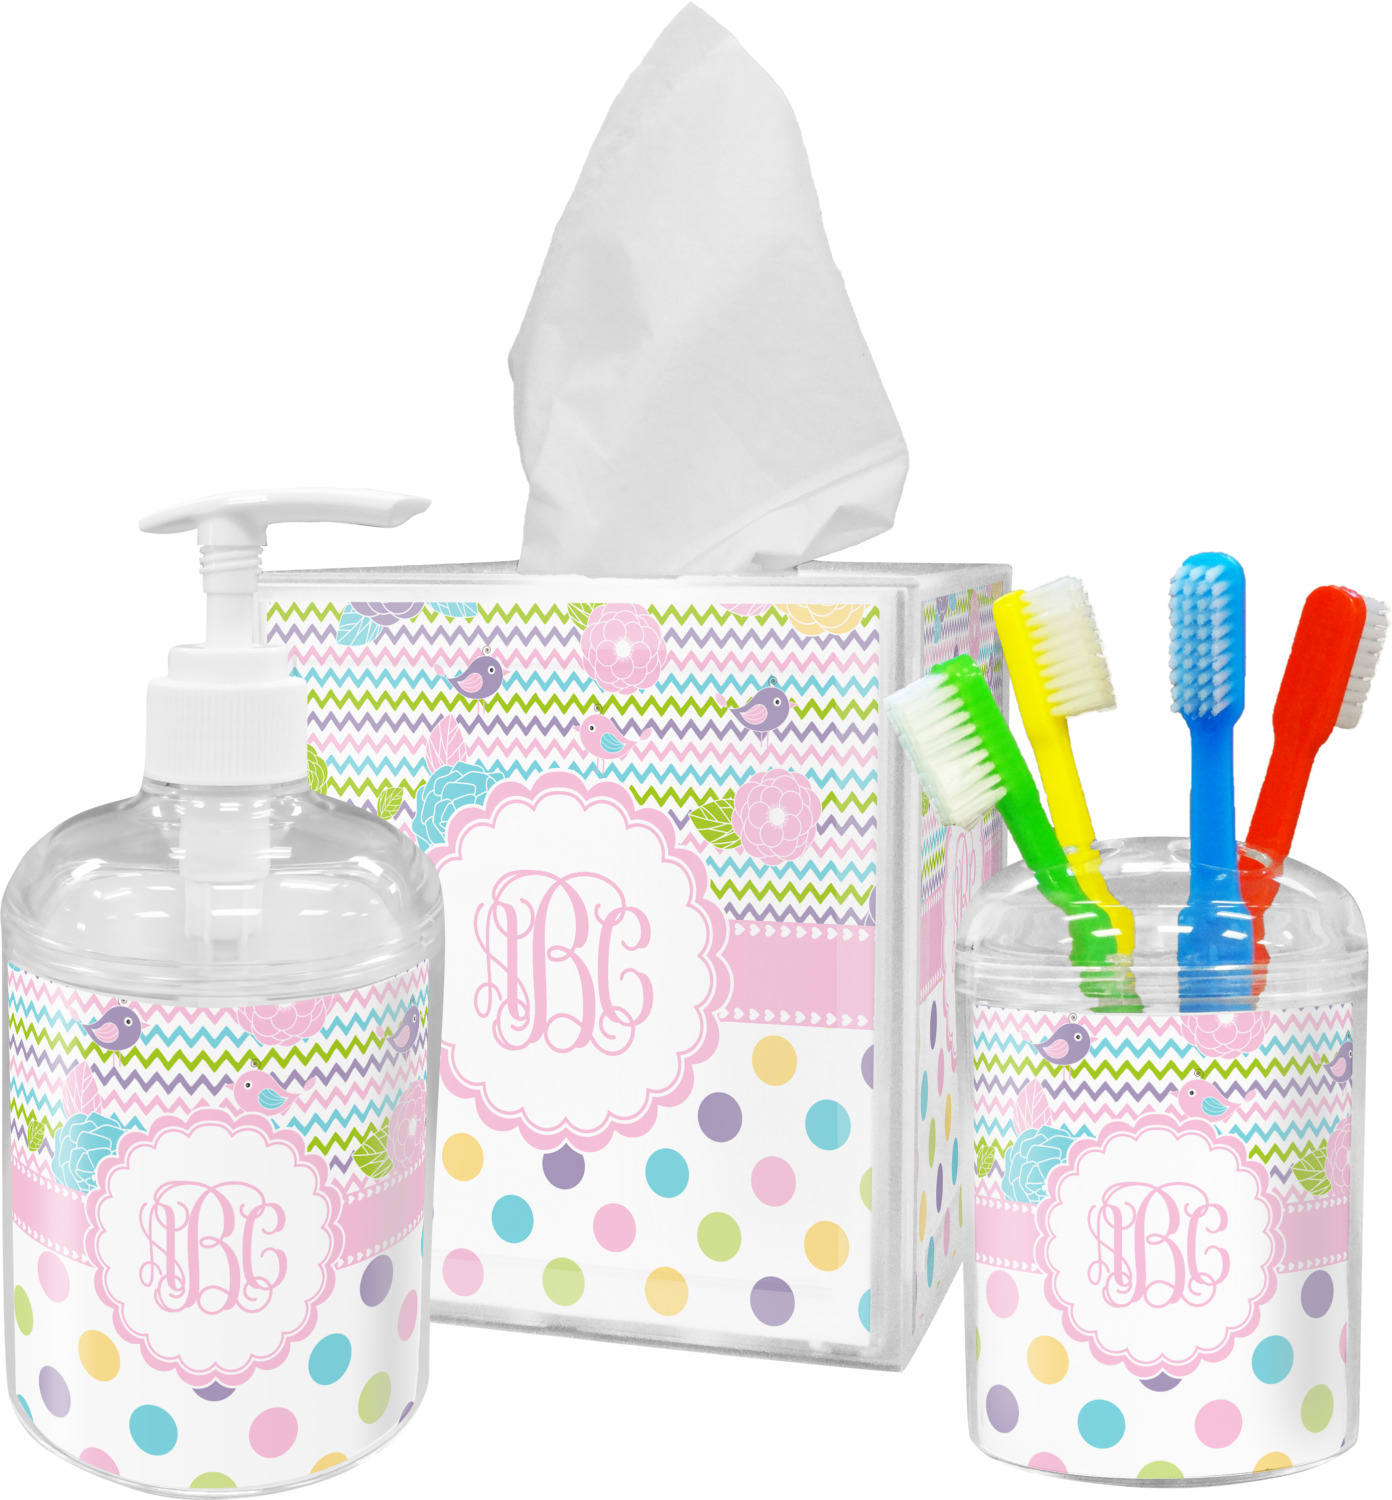 Girly Girl Bathroom Accessories Set Personalized You